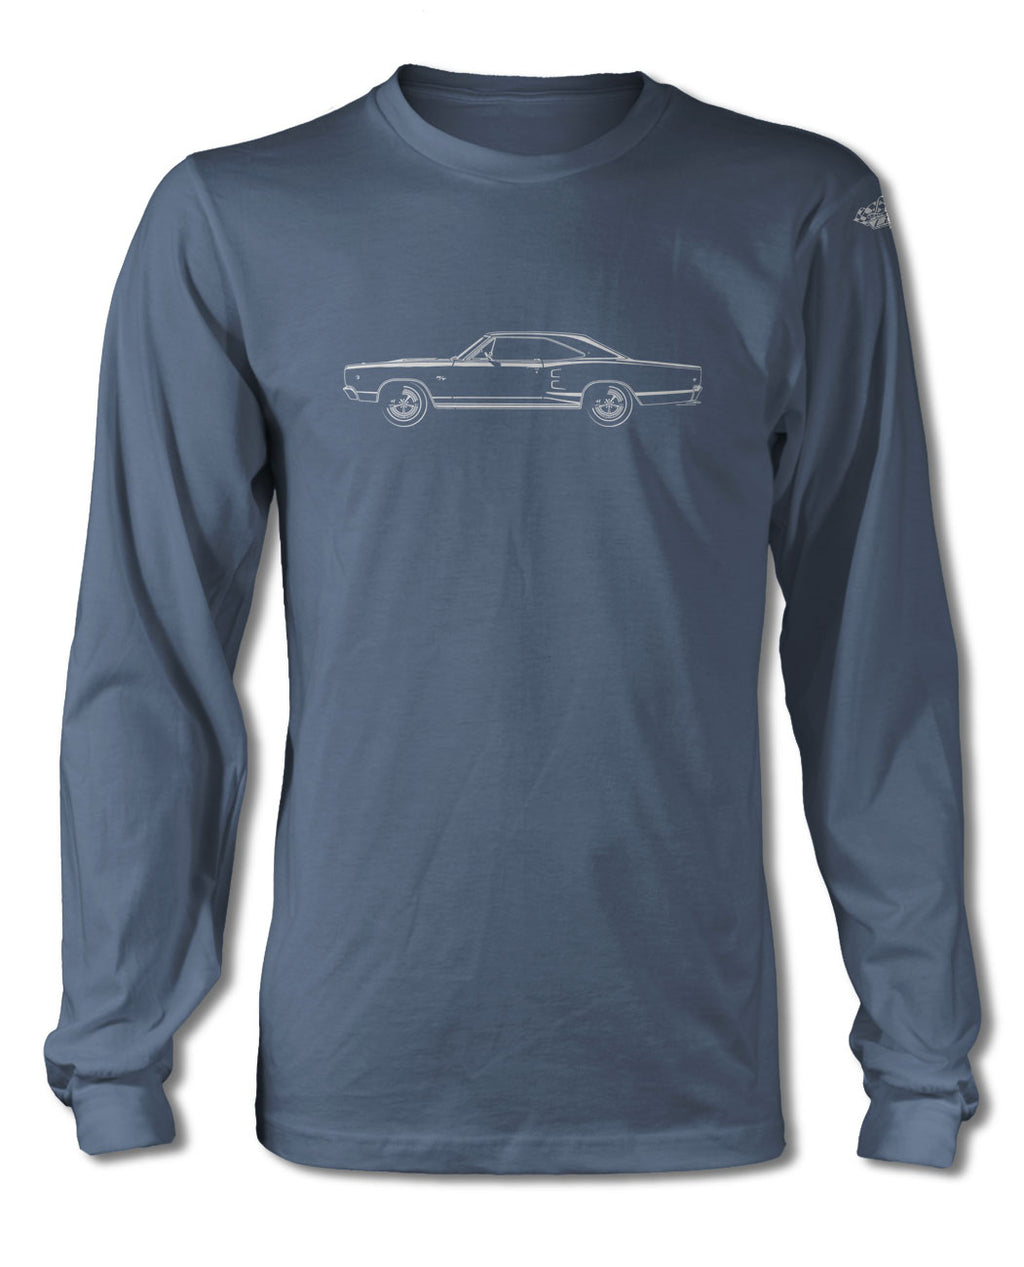 1968 Dodge Coronet RT Coupe T-Shirt - Long Sleeves - Side View